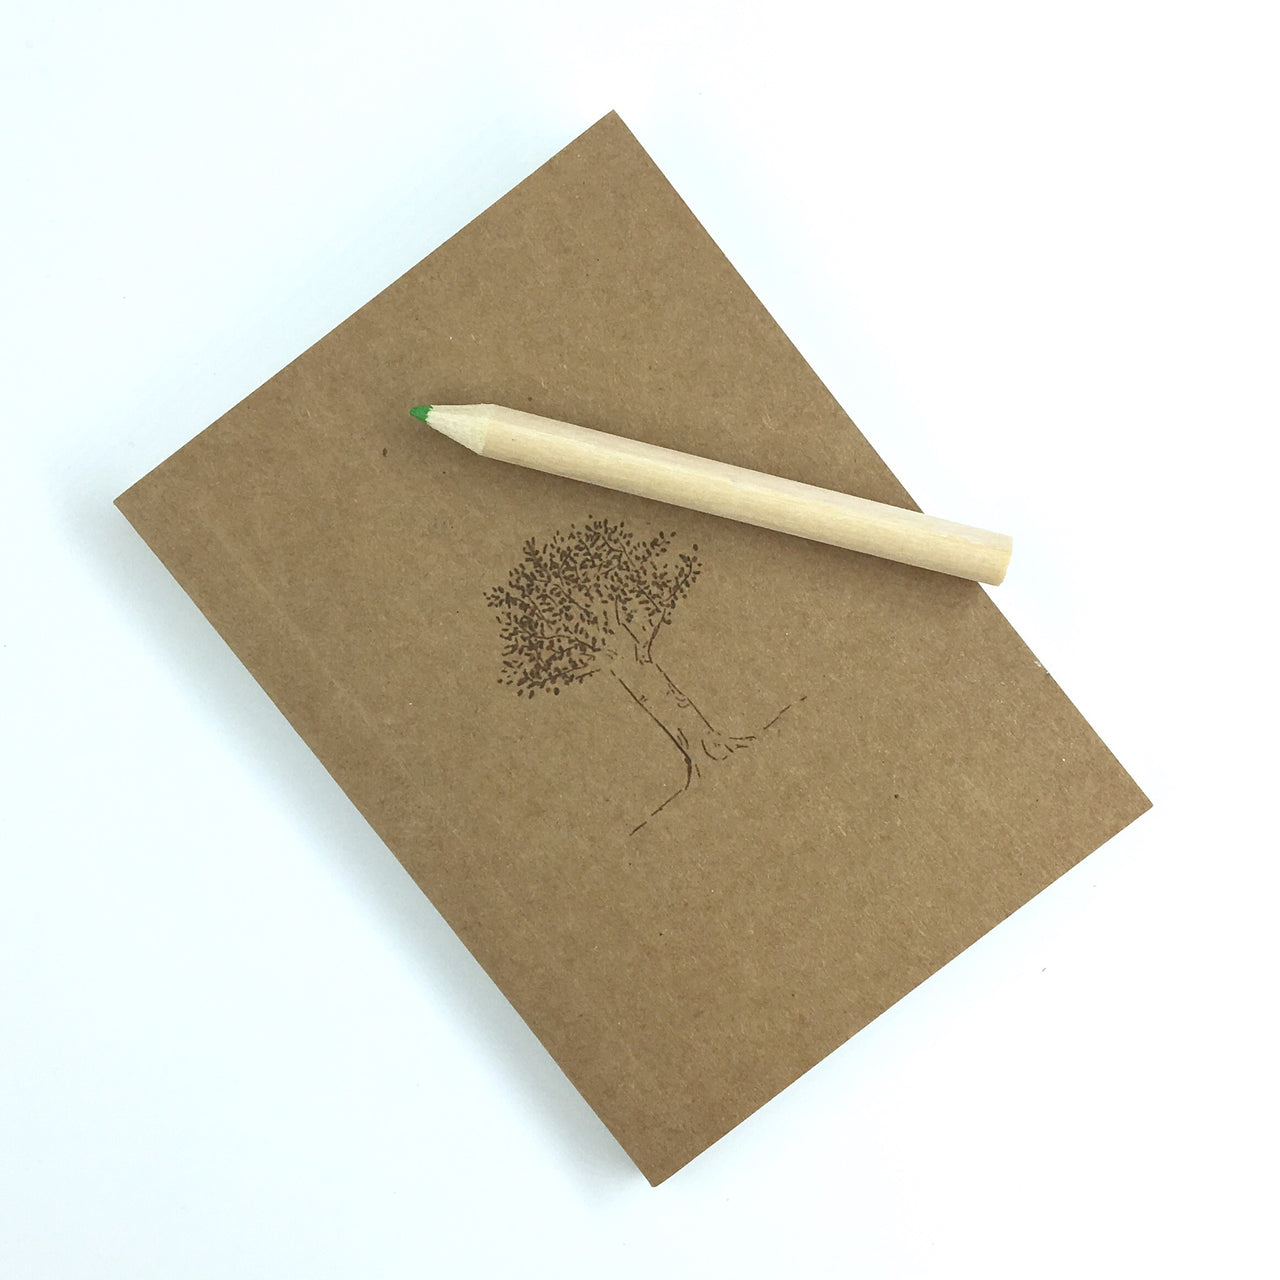 Inked Pocket Sketchbook shown with tree patter